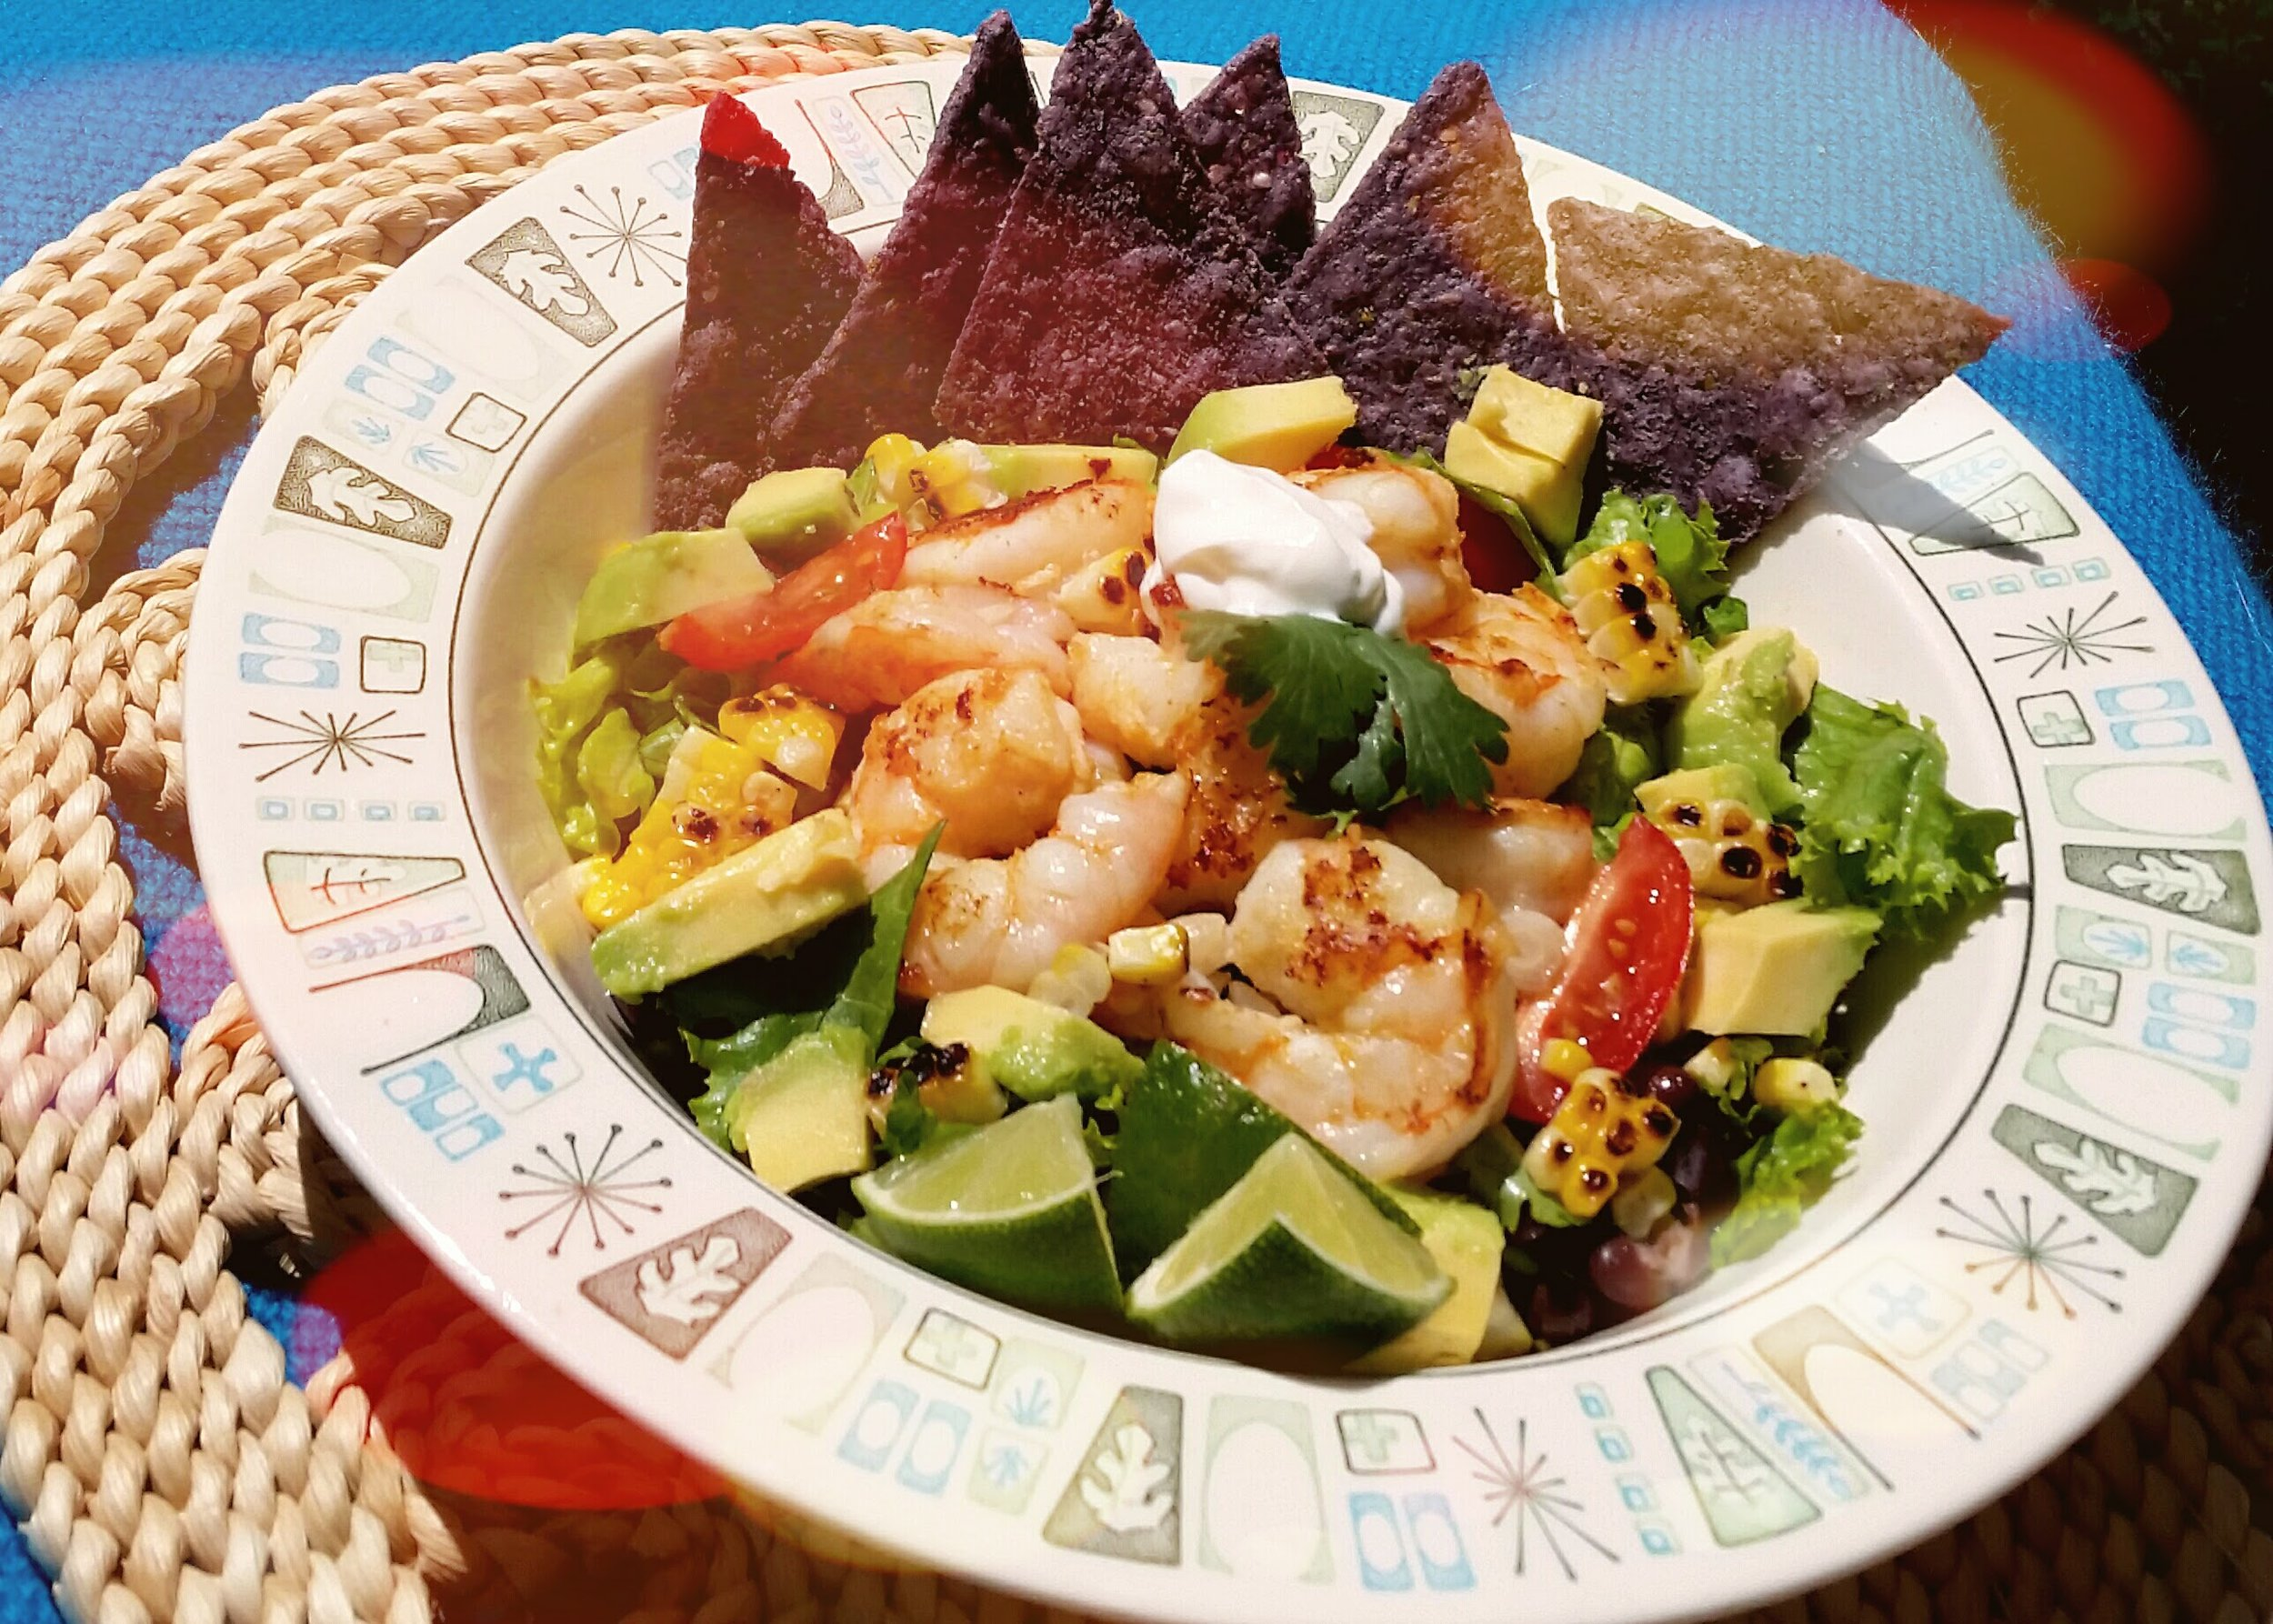 Shrimp and Roasted Corn Taco Salad (Dinner for Two $28.00)